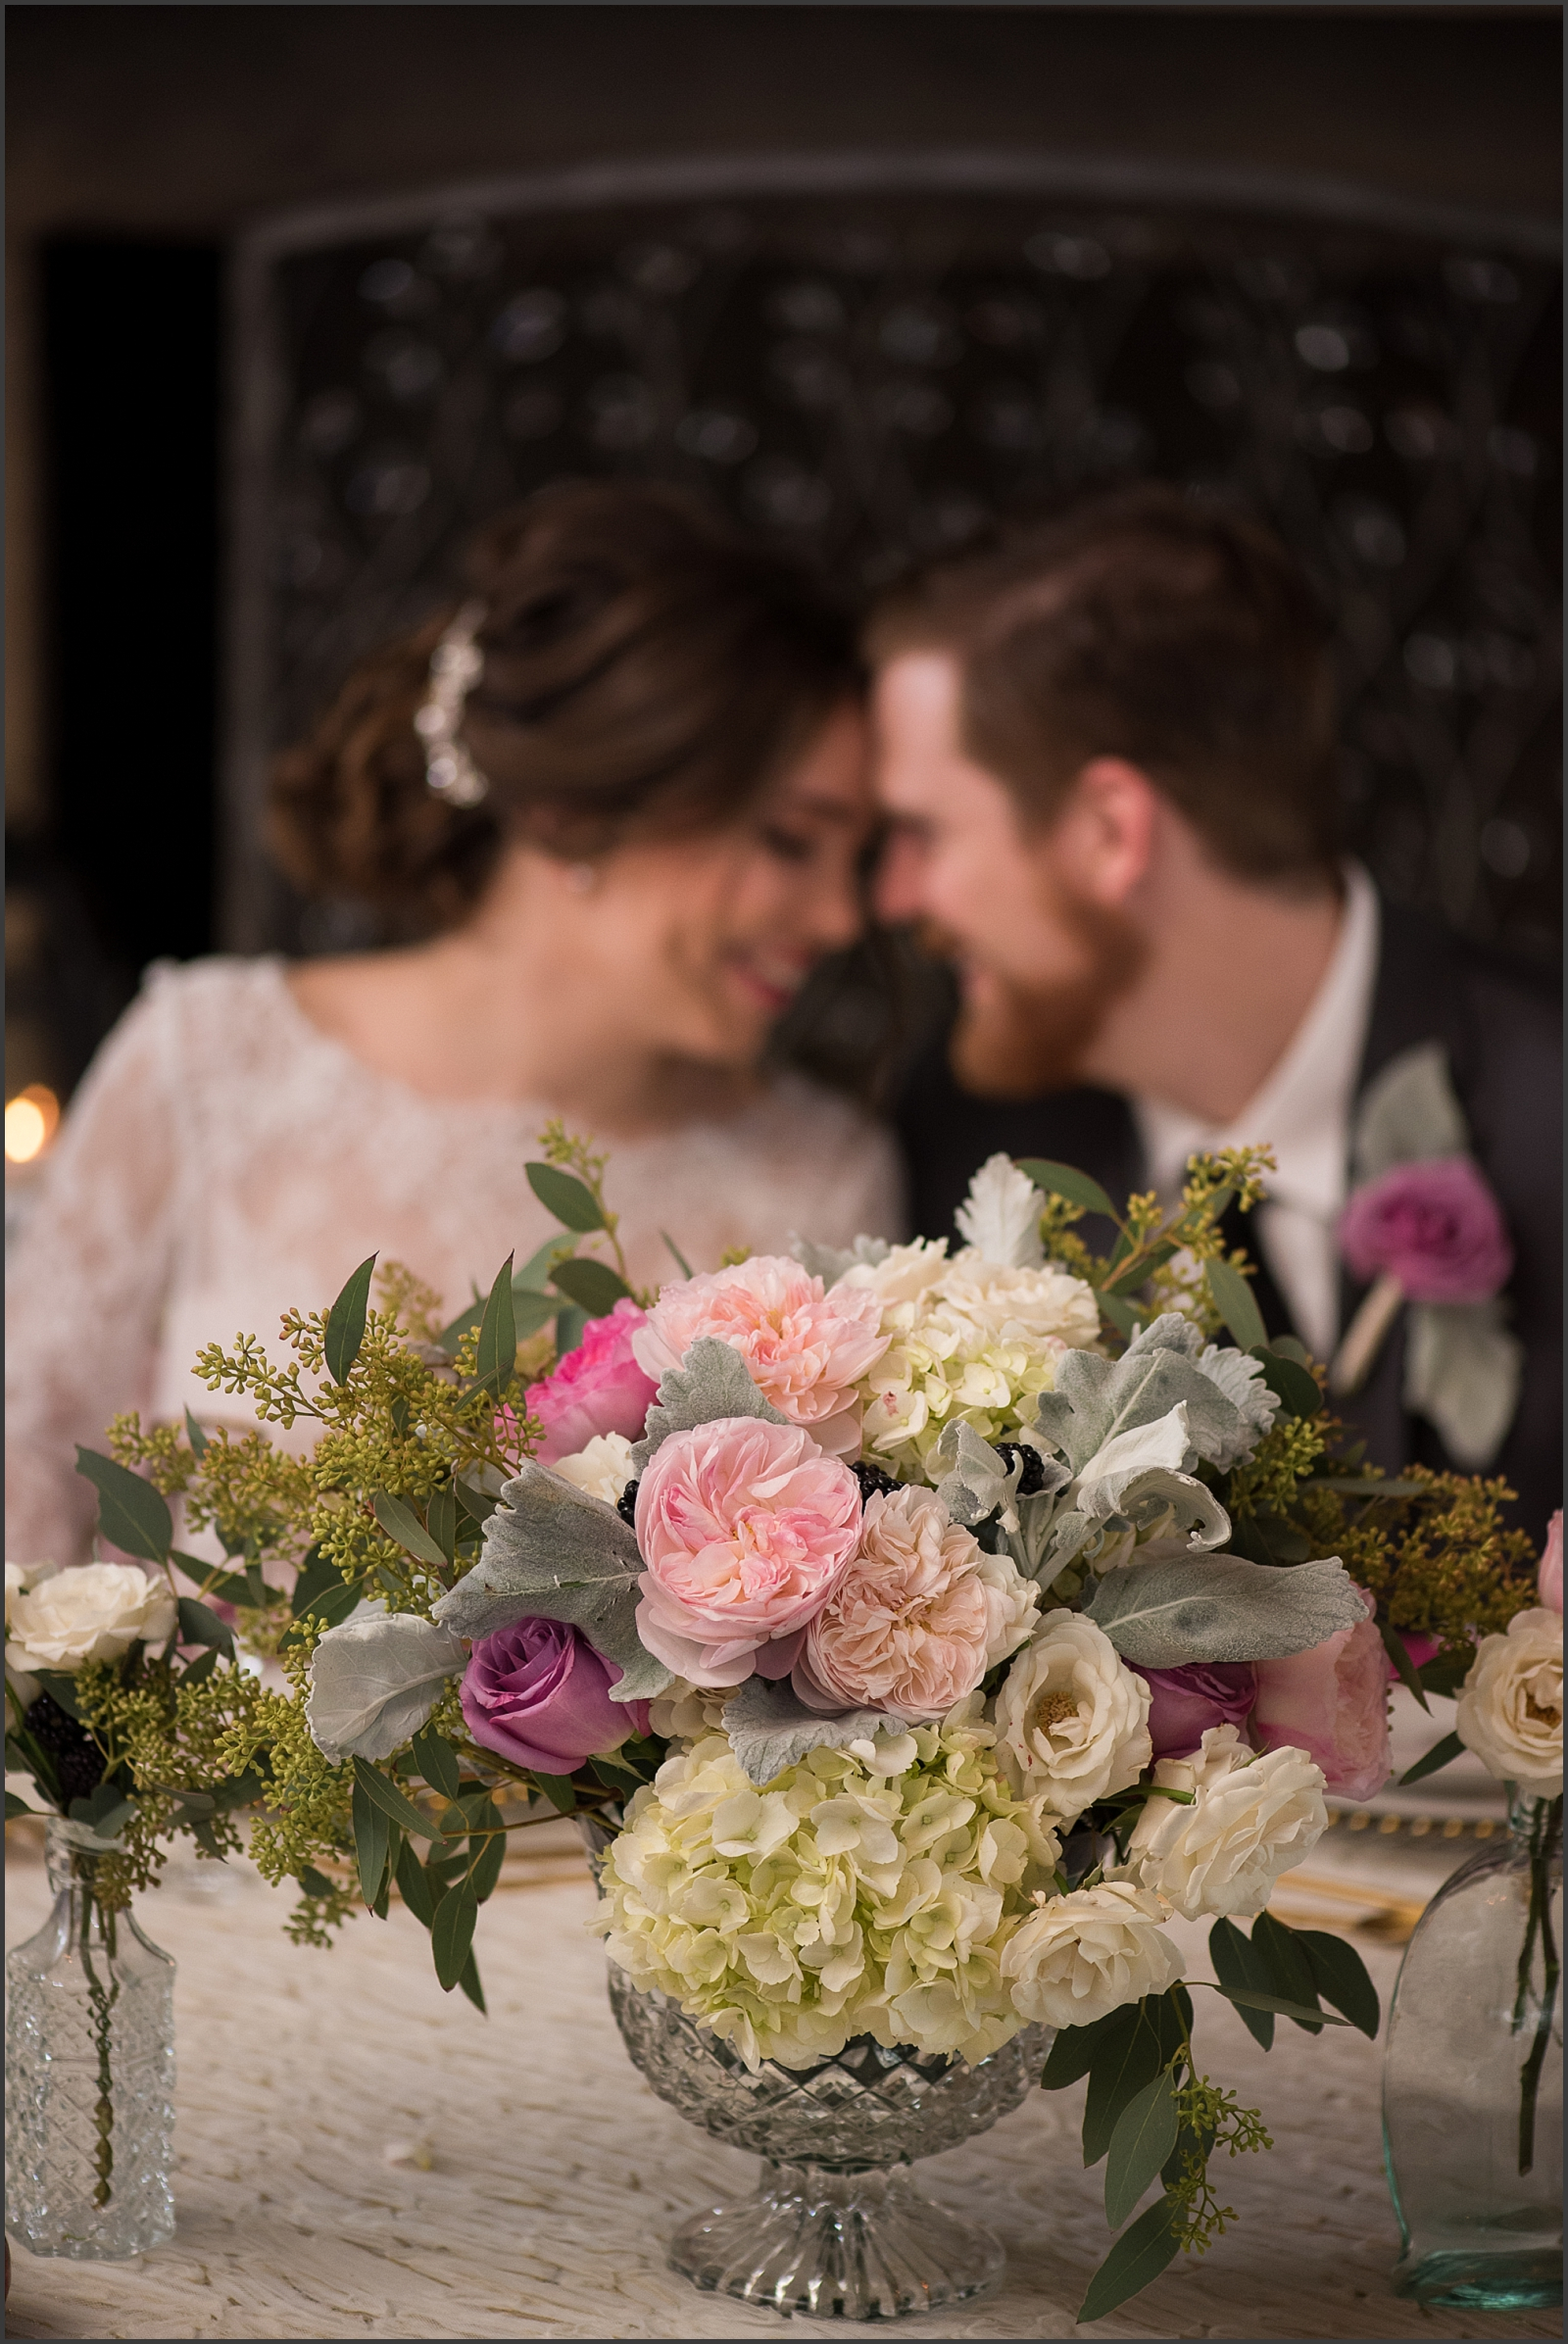 Heritage Blush and Berry Wedding Styled Shoot-274_WEB.jpg